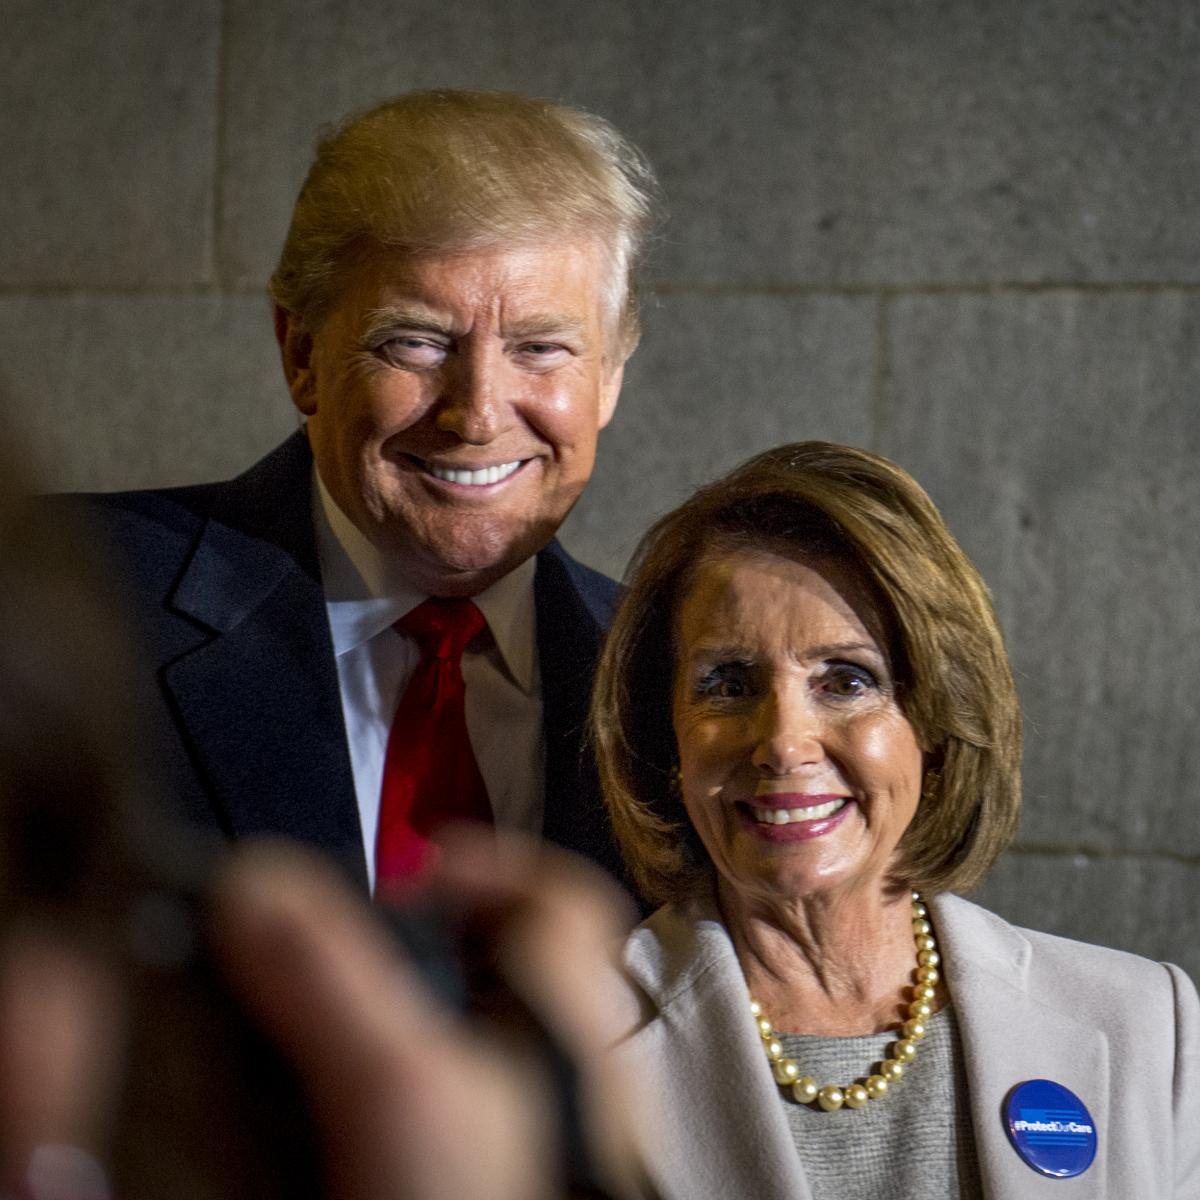 A Trump-Pelosi Budget Deal Is A Recipe For The Worst Kind